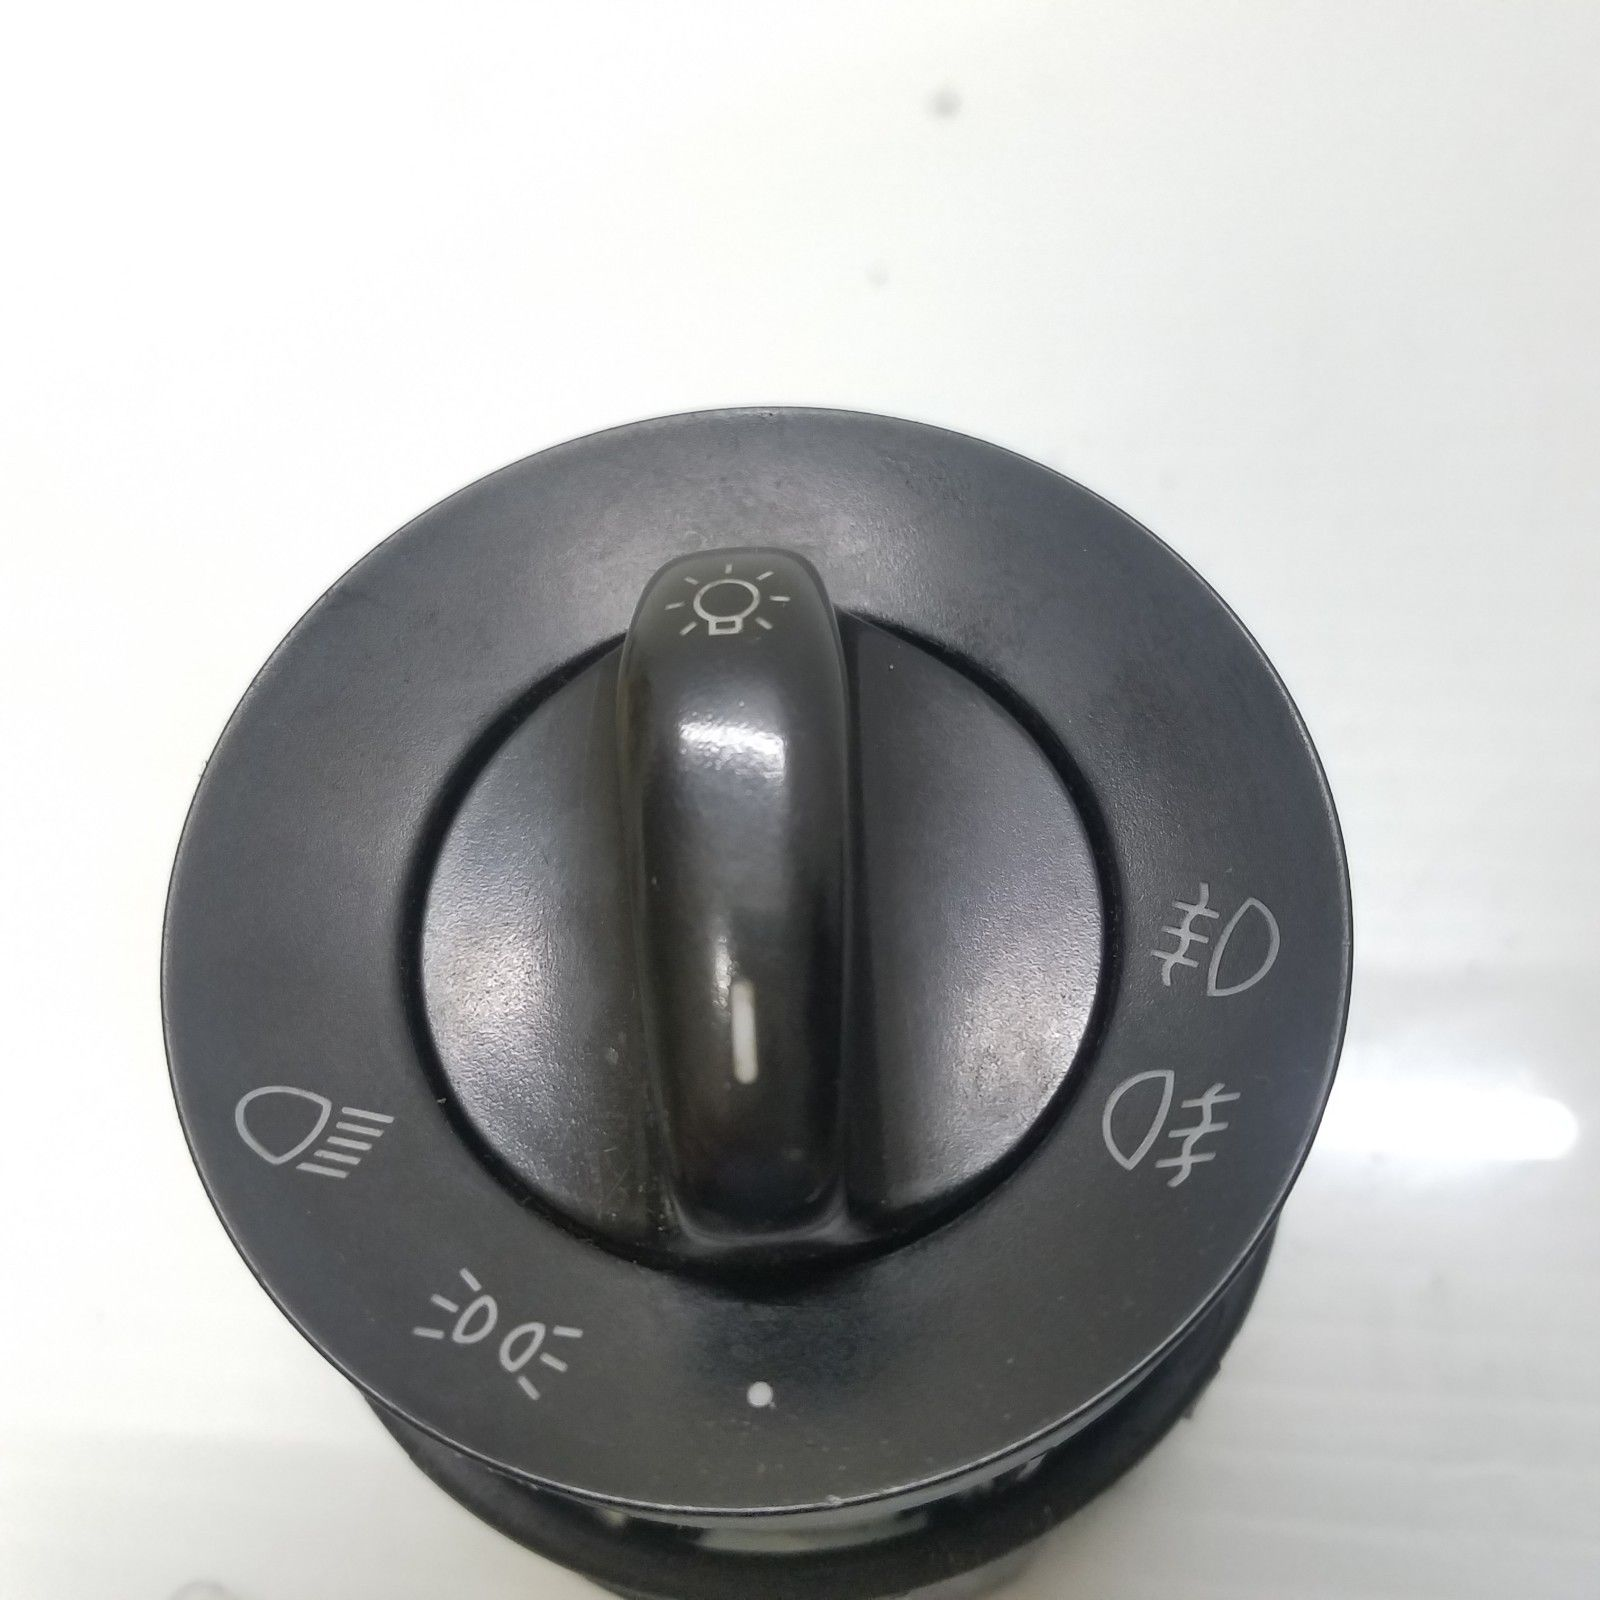 2003-2006 PORSCHE CAYENNE BLACK HEADLIGHT SWITCH KNOB 7L5941531 OEM 7L5941531B Po3Cay